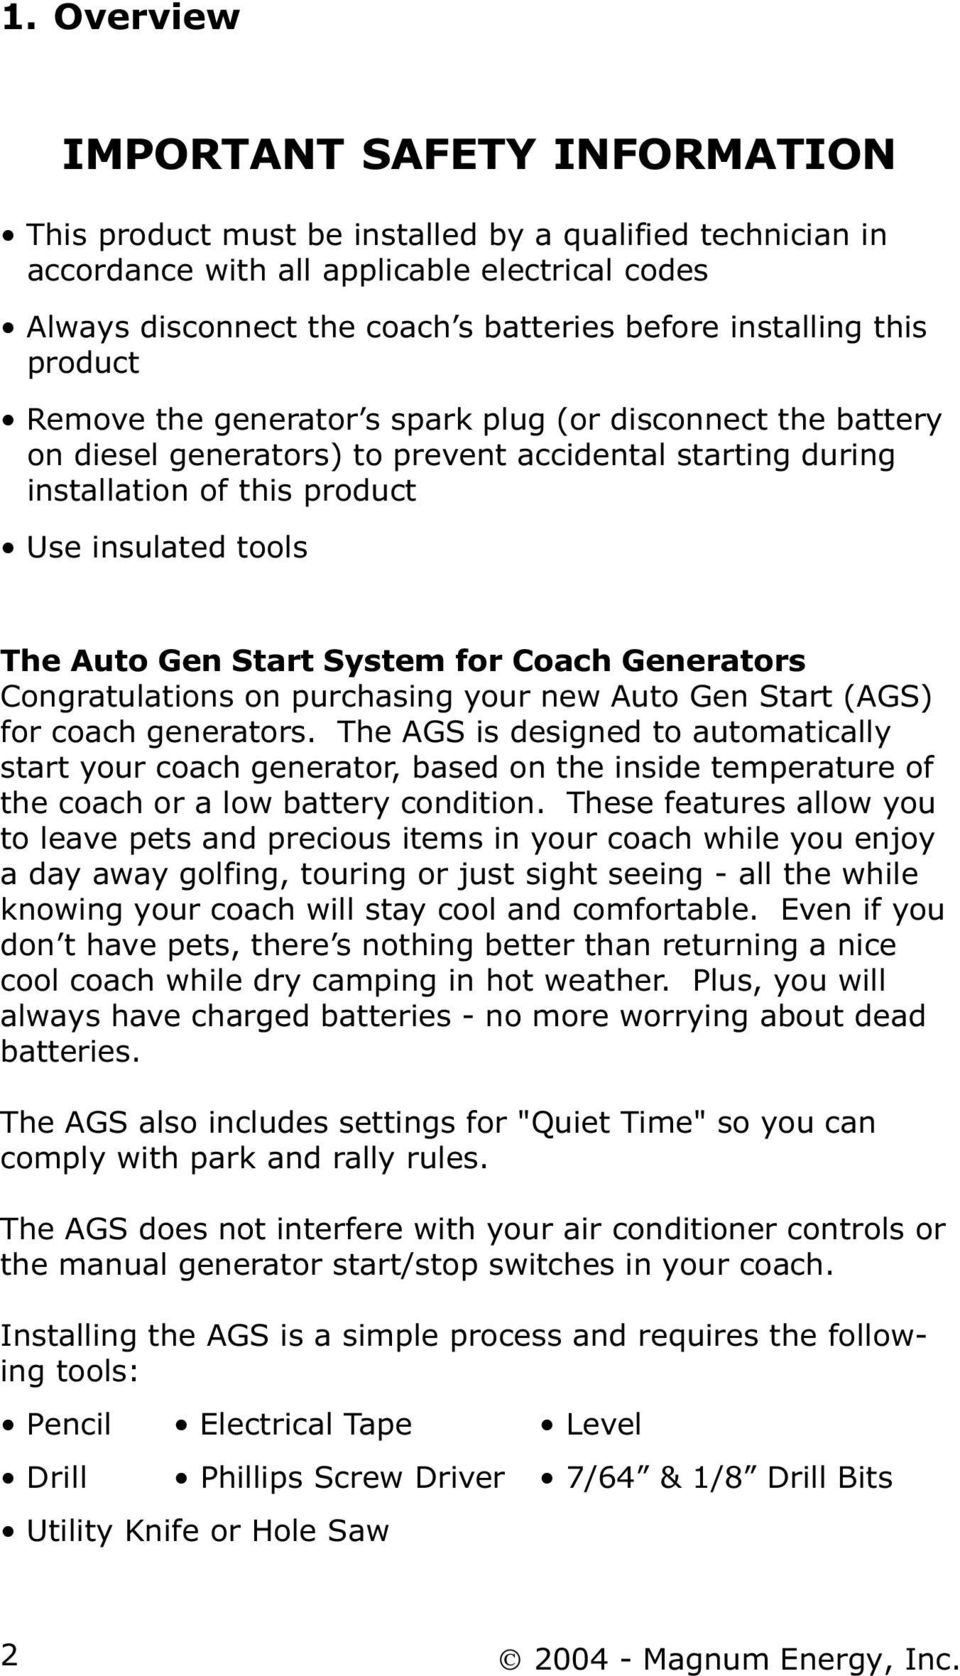 Auto Gen Start System for Coach Generators Congratulations on purchasing your new Auto Gen Start (AGS) for coach generators.